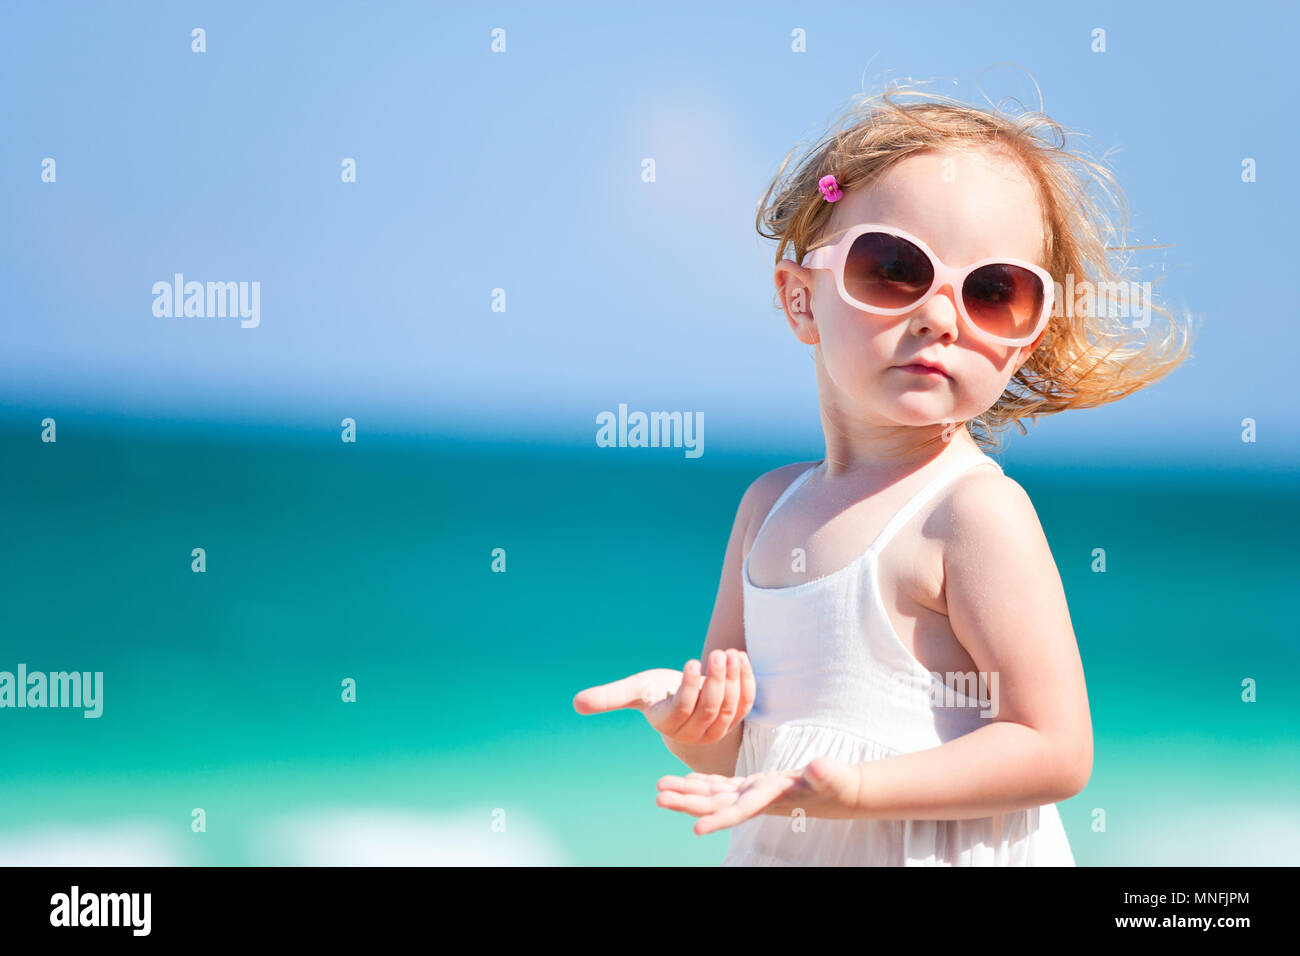 e18037a7c72 Portrait of cute little girl on beach vacation Stock Photo ...